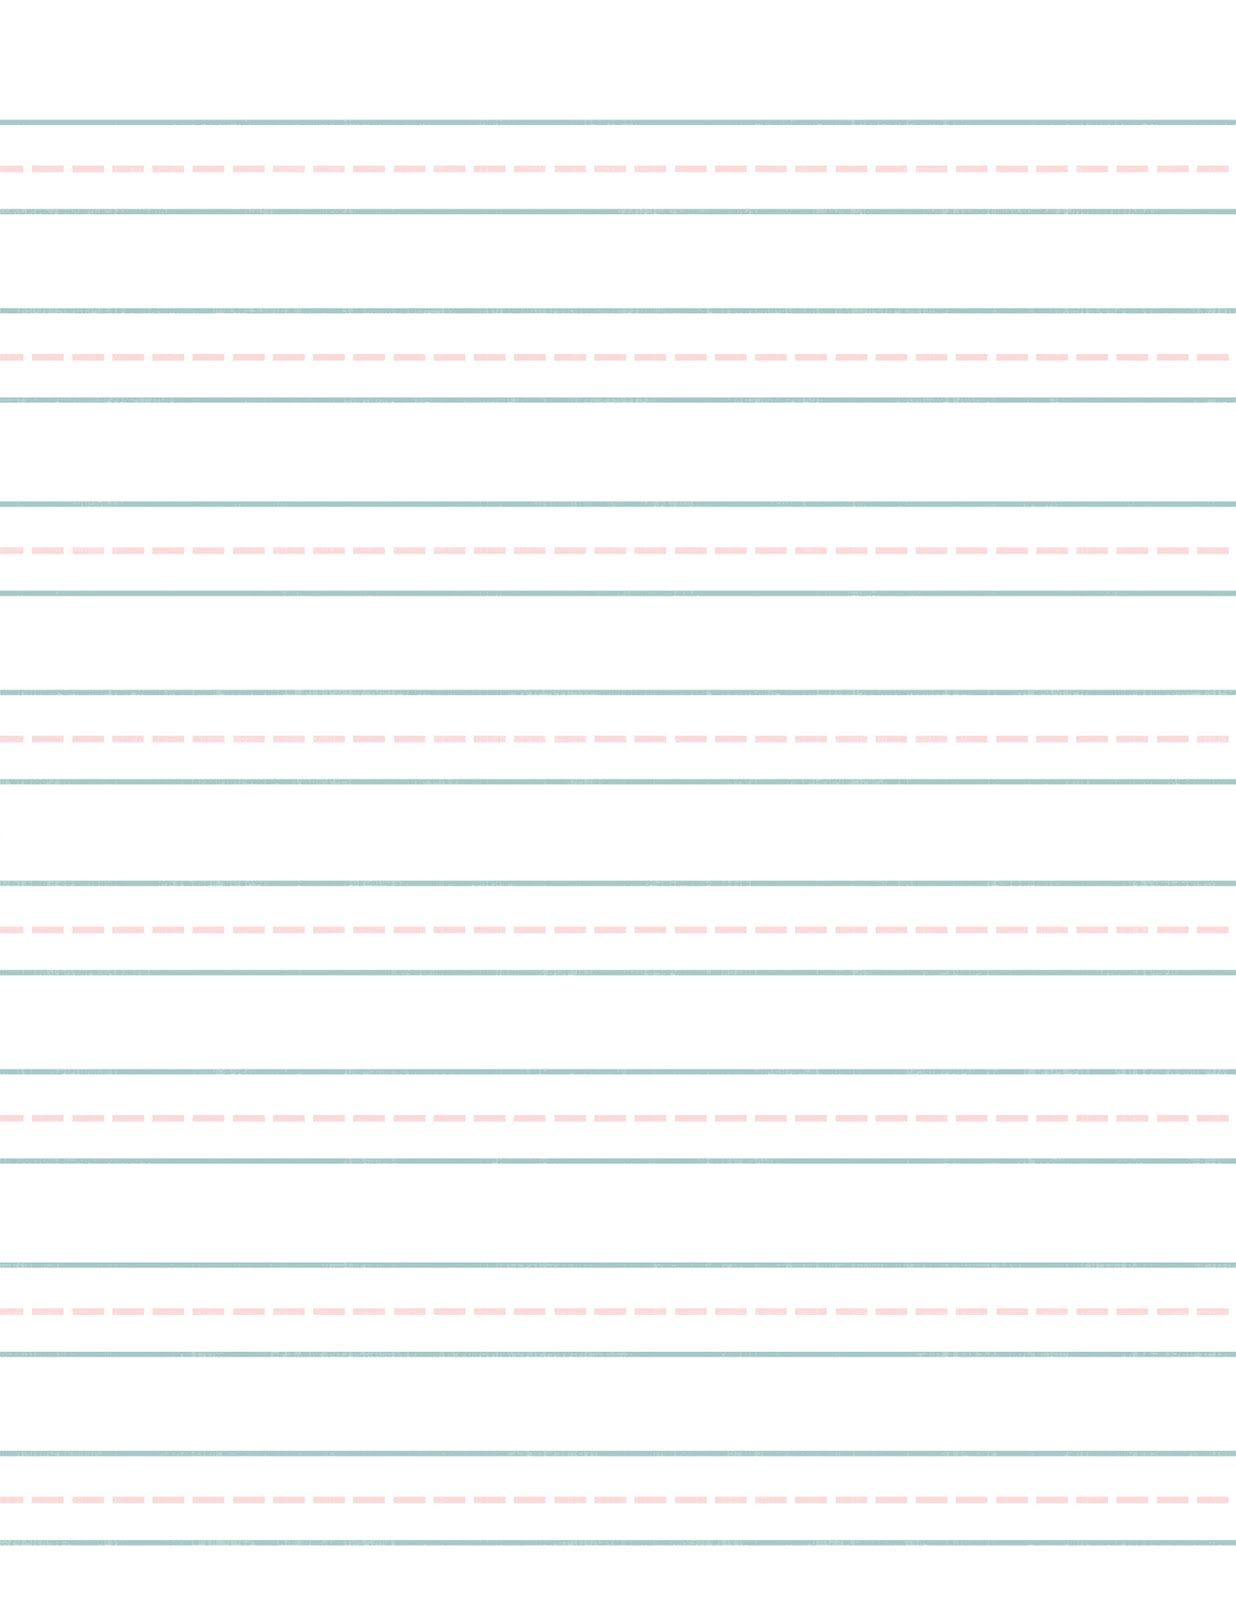 printable lined paper template elementary – School Writing Paper Template